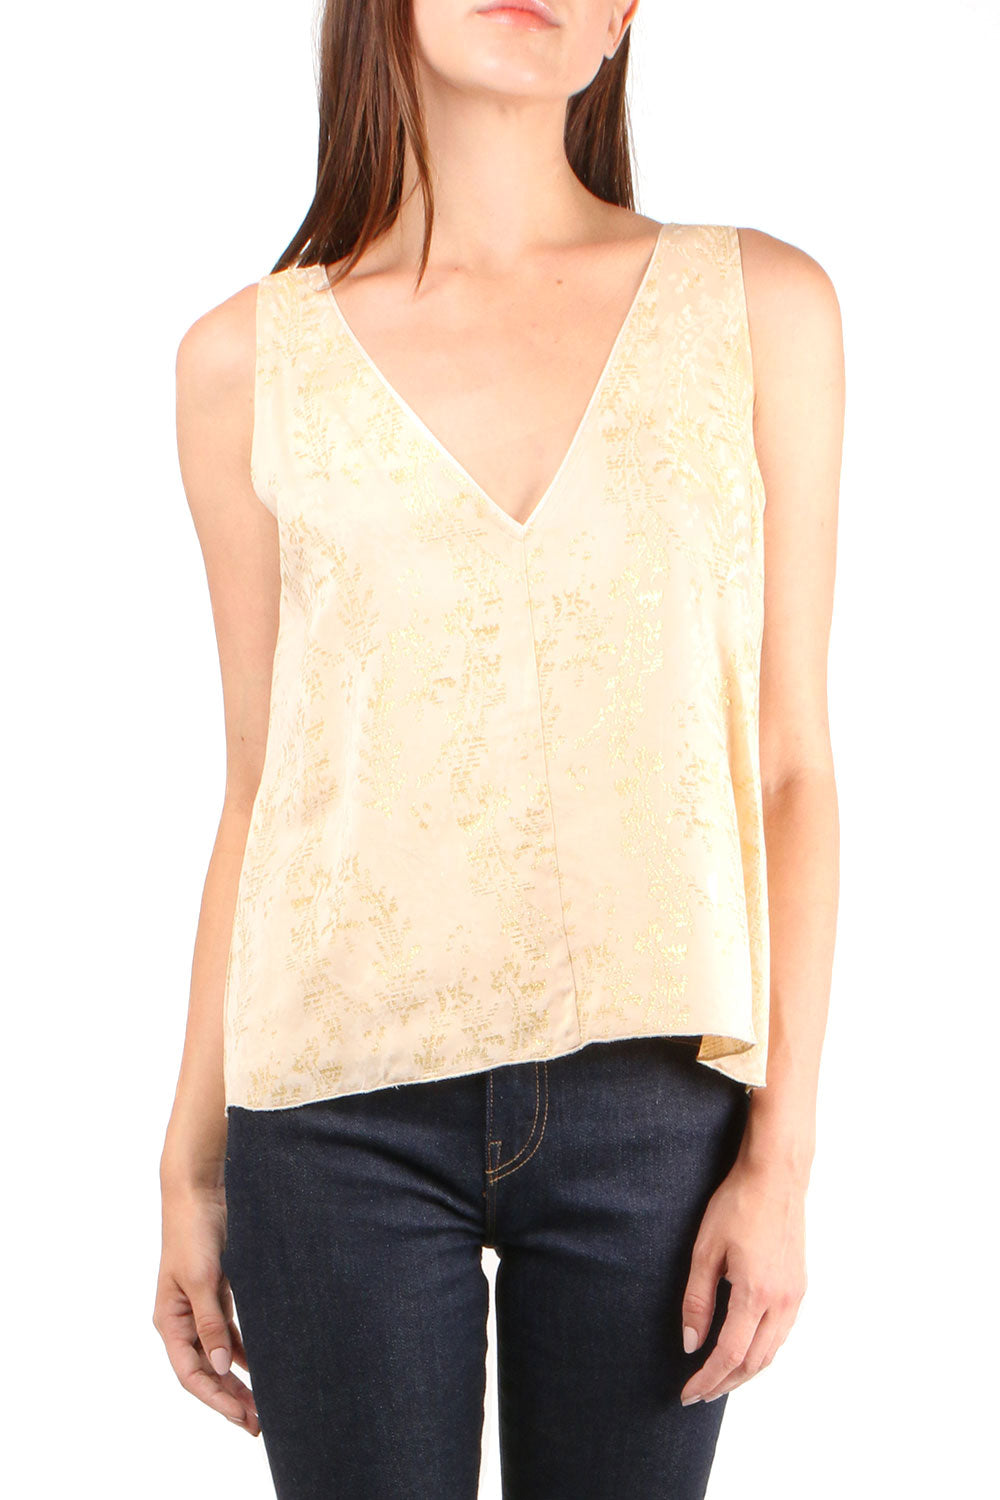 Gipsy Gold Jacquard Top